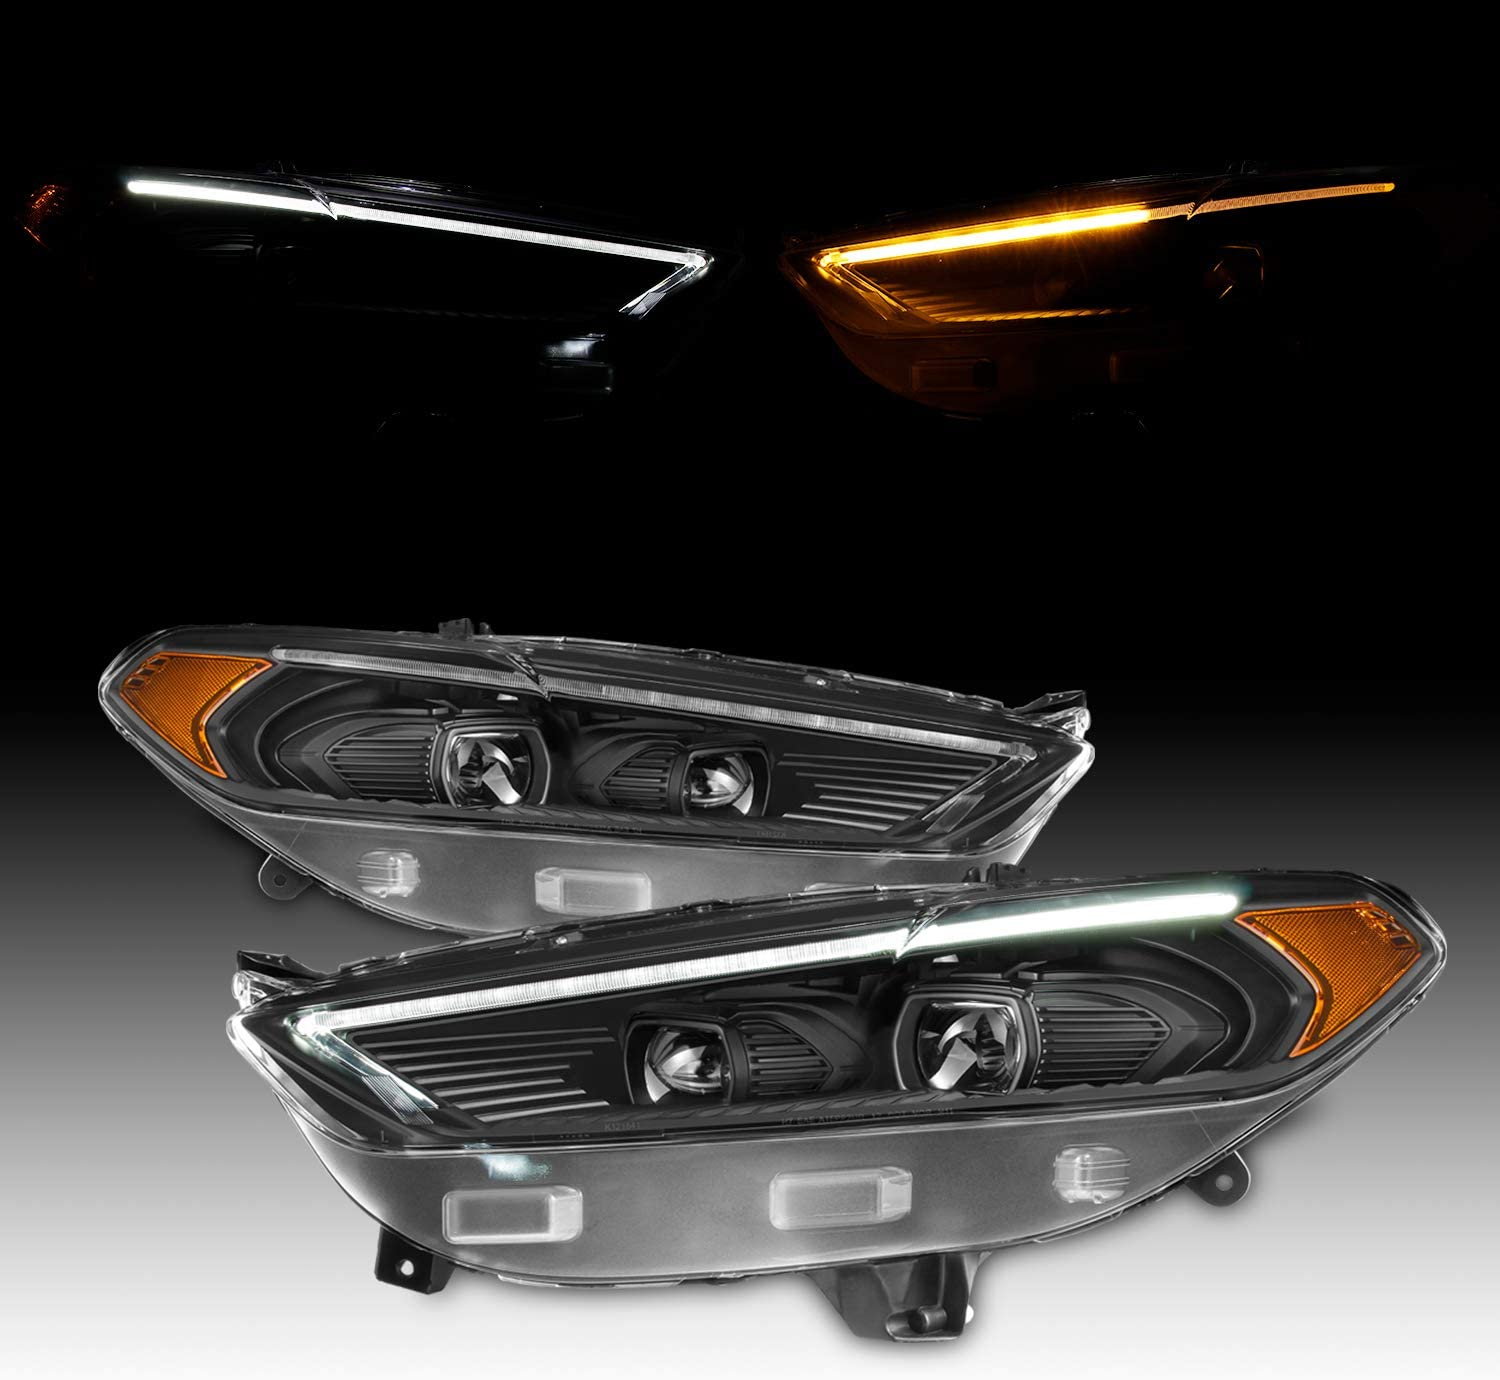 NEW 2013-2016 Ford Fusion Headlight Light Lamp Driver Side Left Halogen 13-16